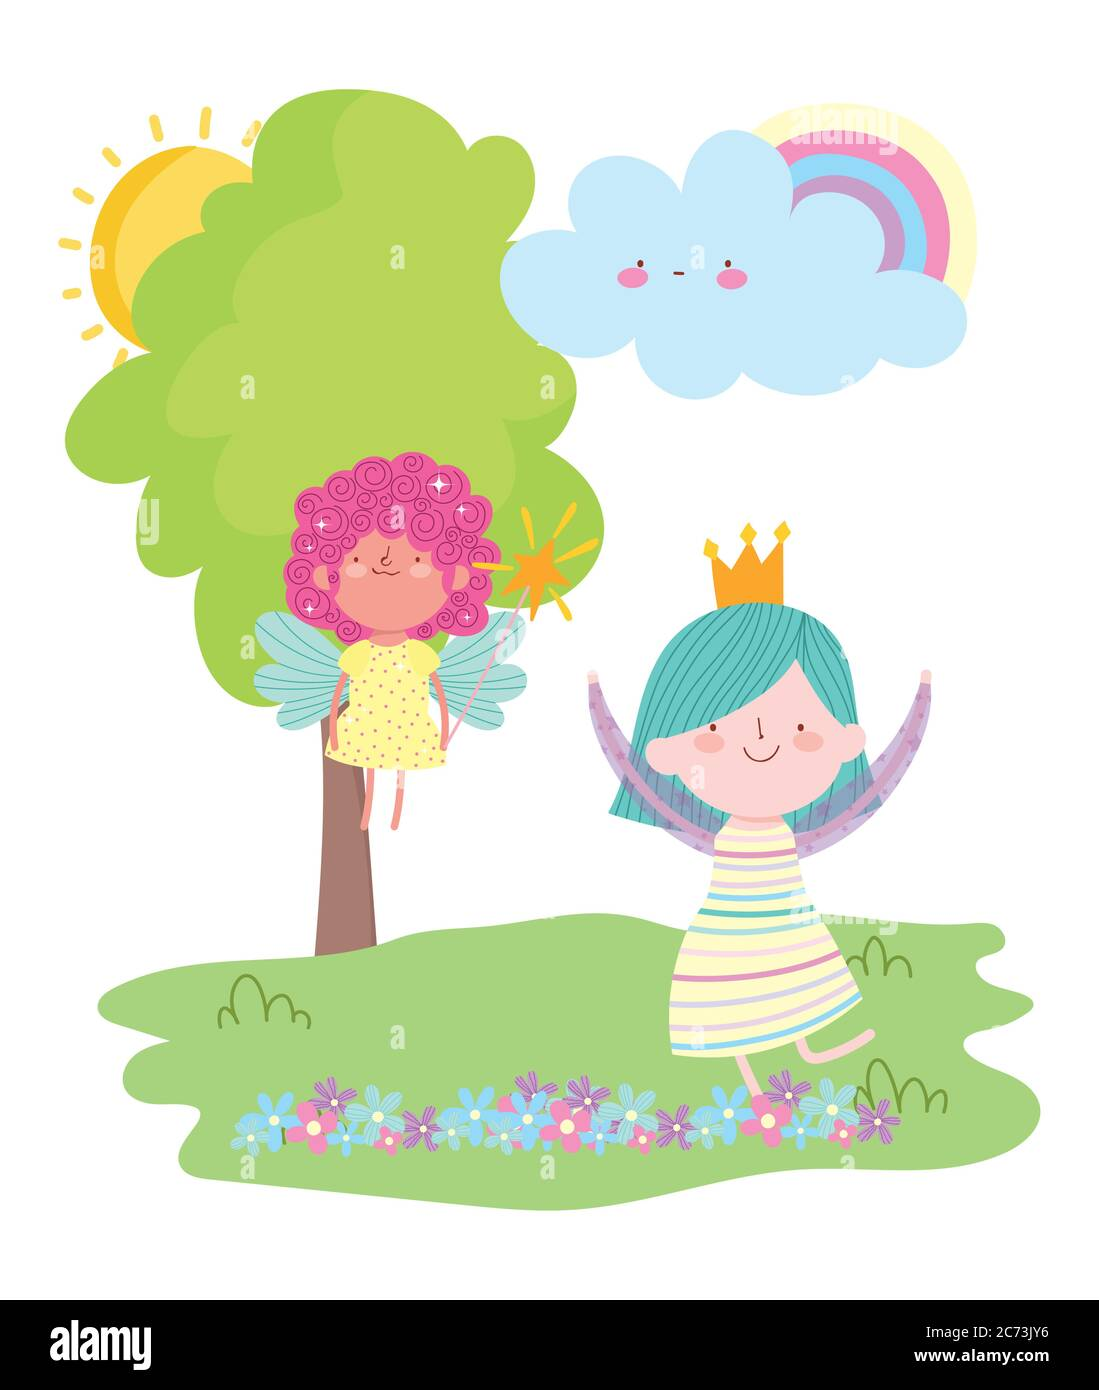 Little Fairy Princess With Magic Wand And Girl With Crown Rainbow Tale Cartoon Vector Illustration Stock Vector Image Art Alamy There are 2084 crown cartoon for sale on etsy, and they cost $29.19 on average. alamy